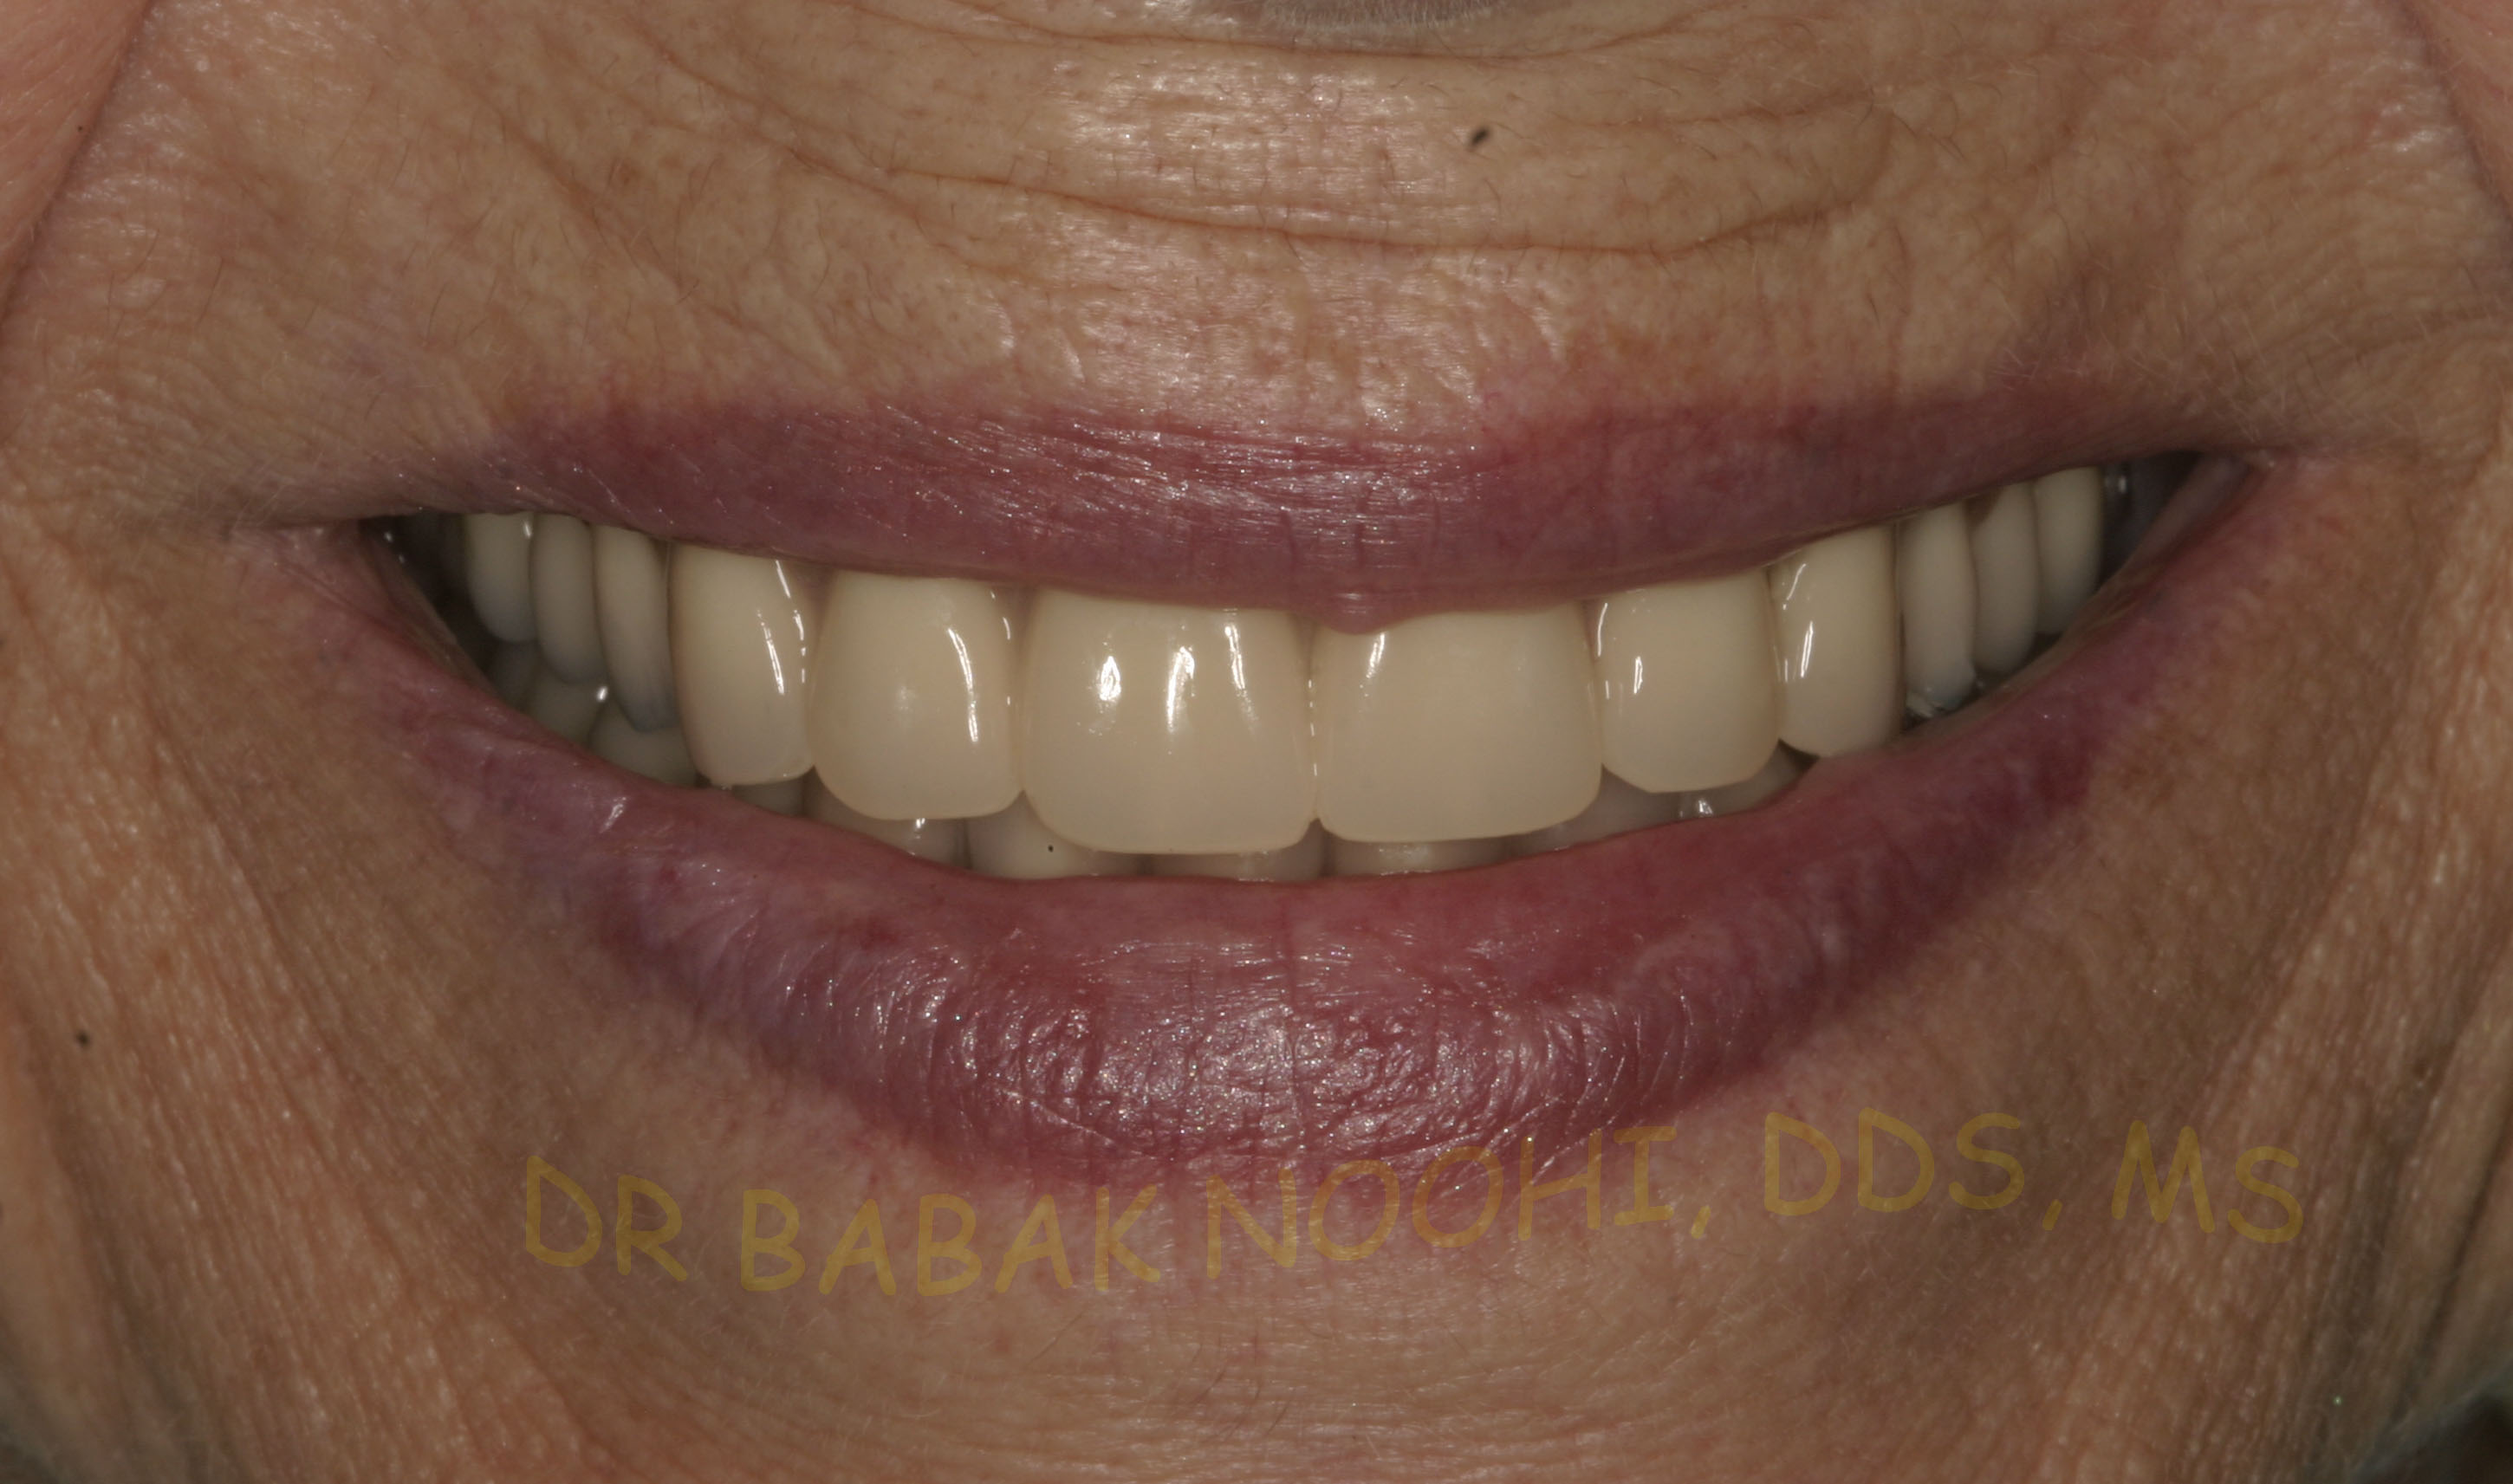 New Denture and Over-denture in place. The smile was significantly changed.